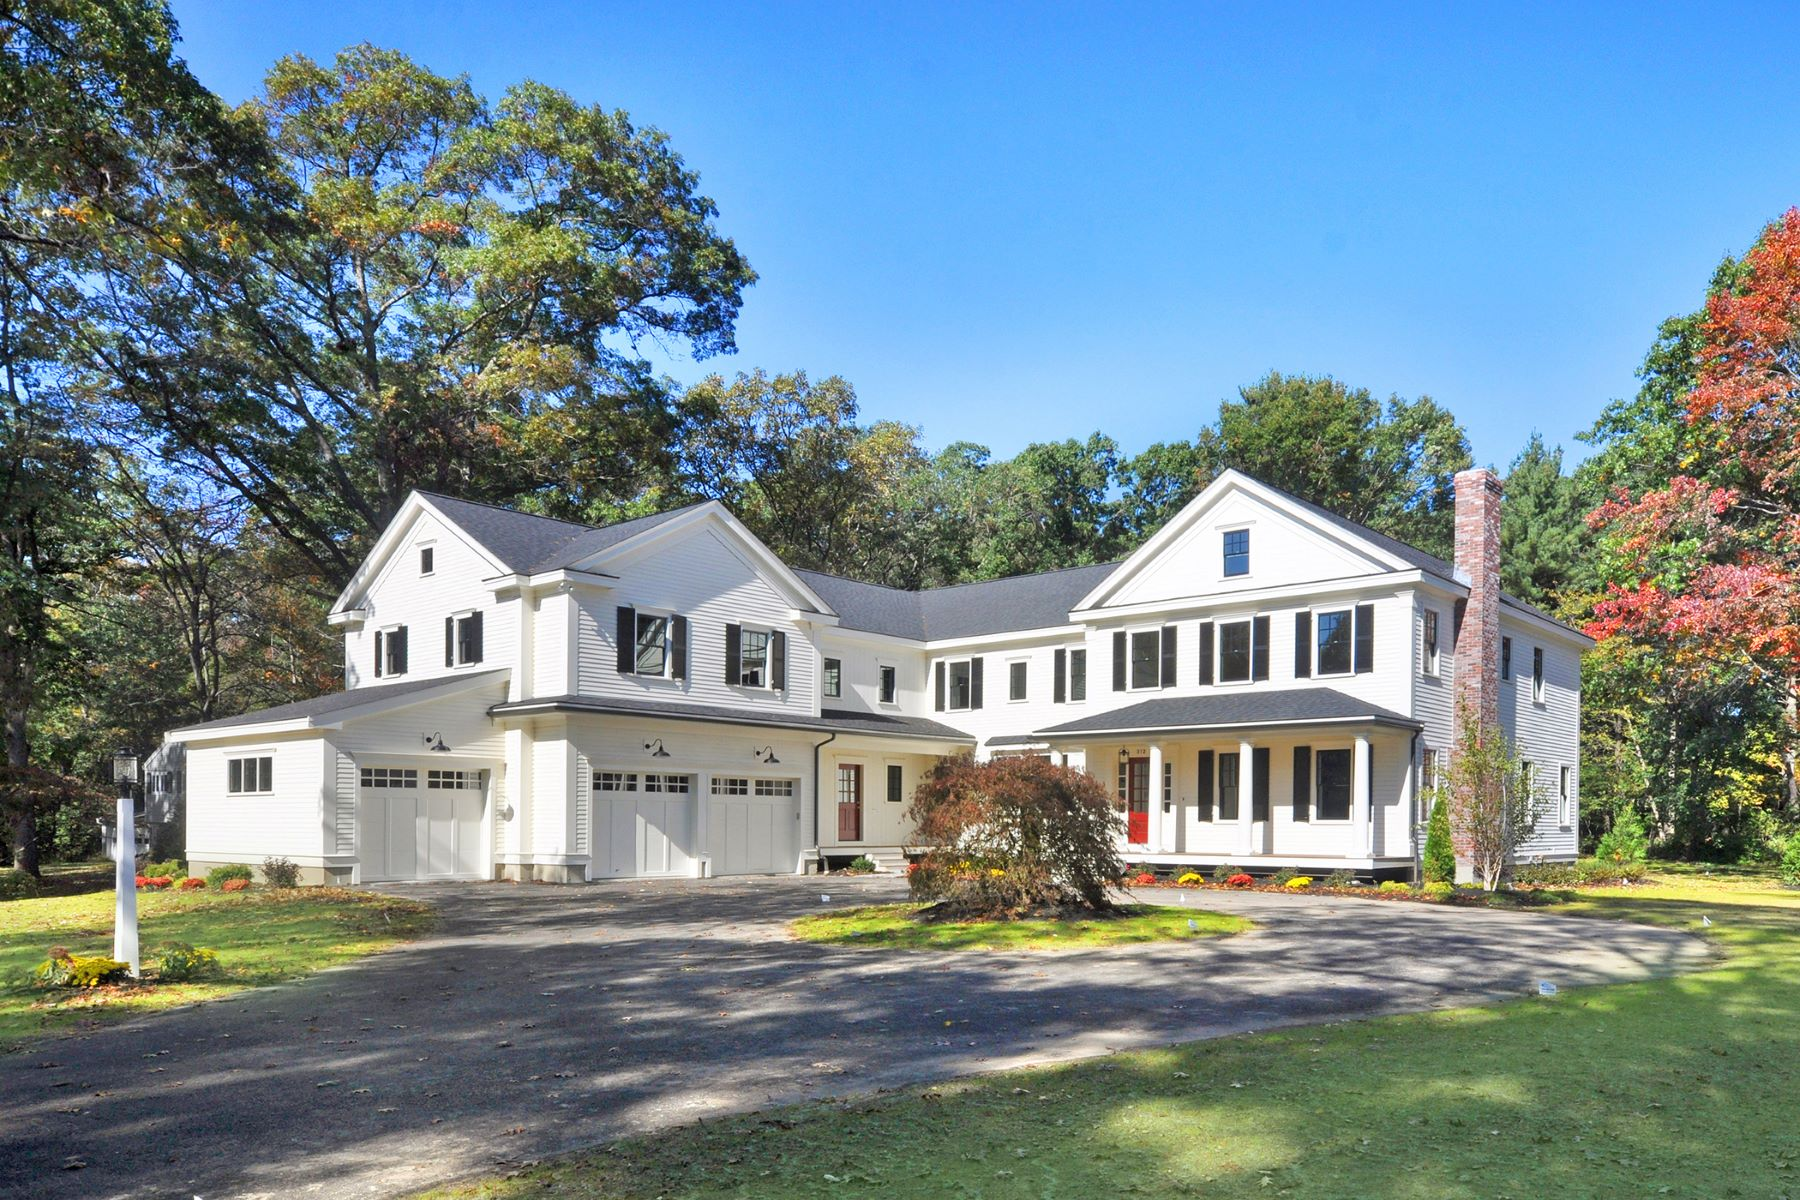 Single Family Home for Active at 312 Nashoba Road, Concord 312 Nashoba Rd Concord, Massachusetts 01742 United States